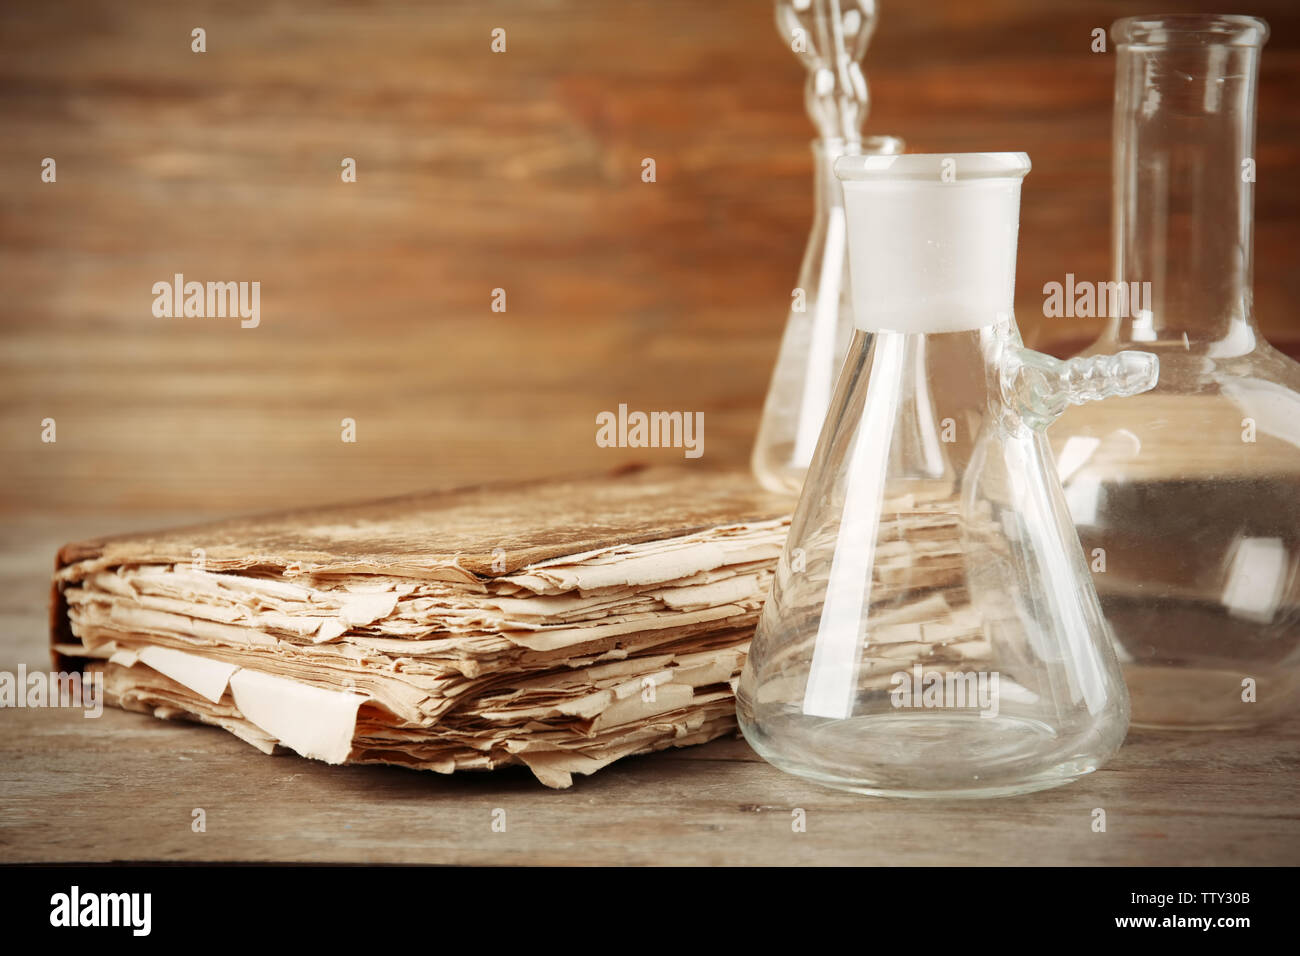 Glass flasks and old book on wooden table, closeup - Stock Image